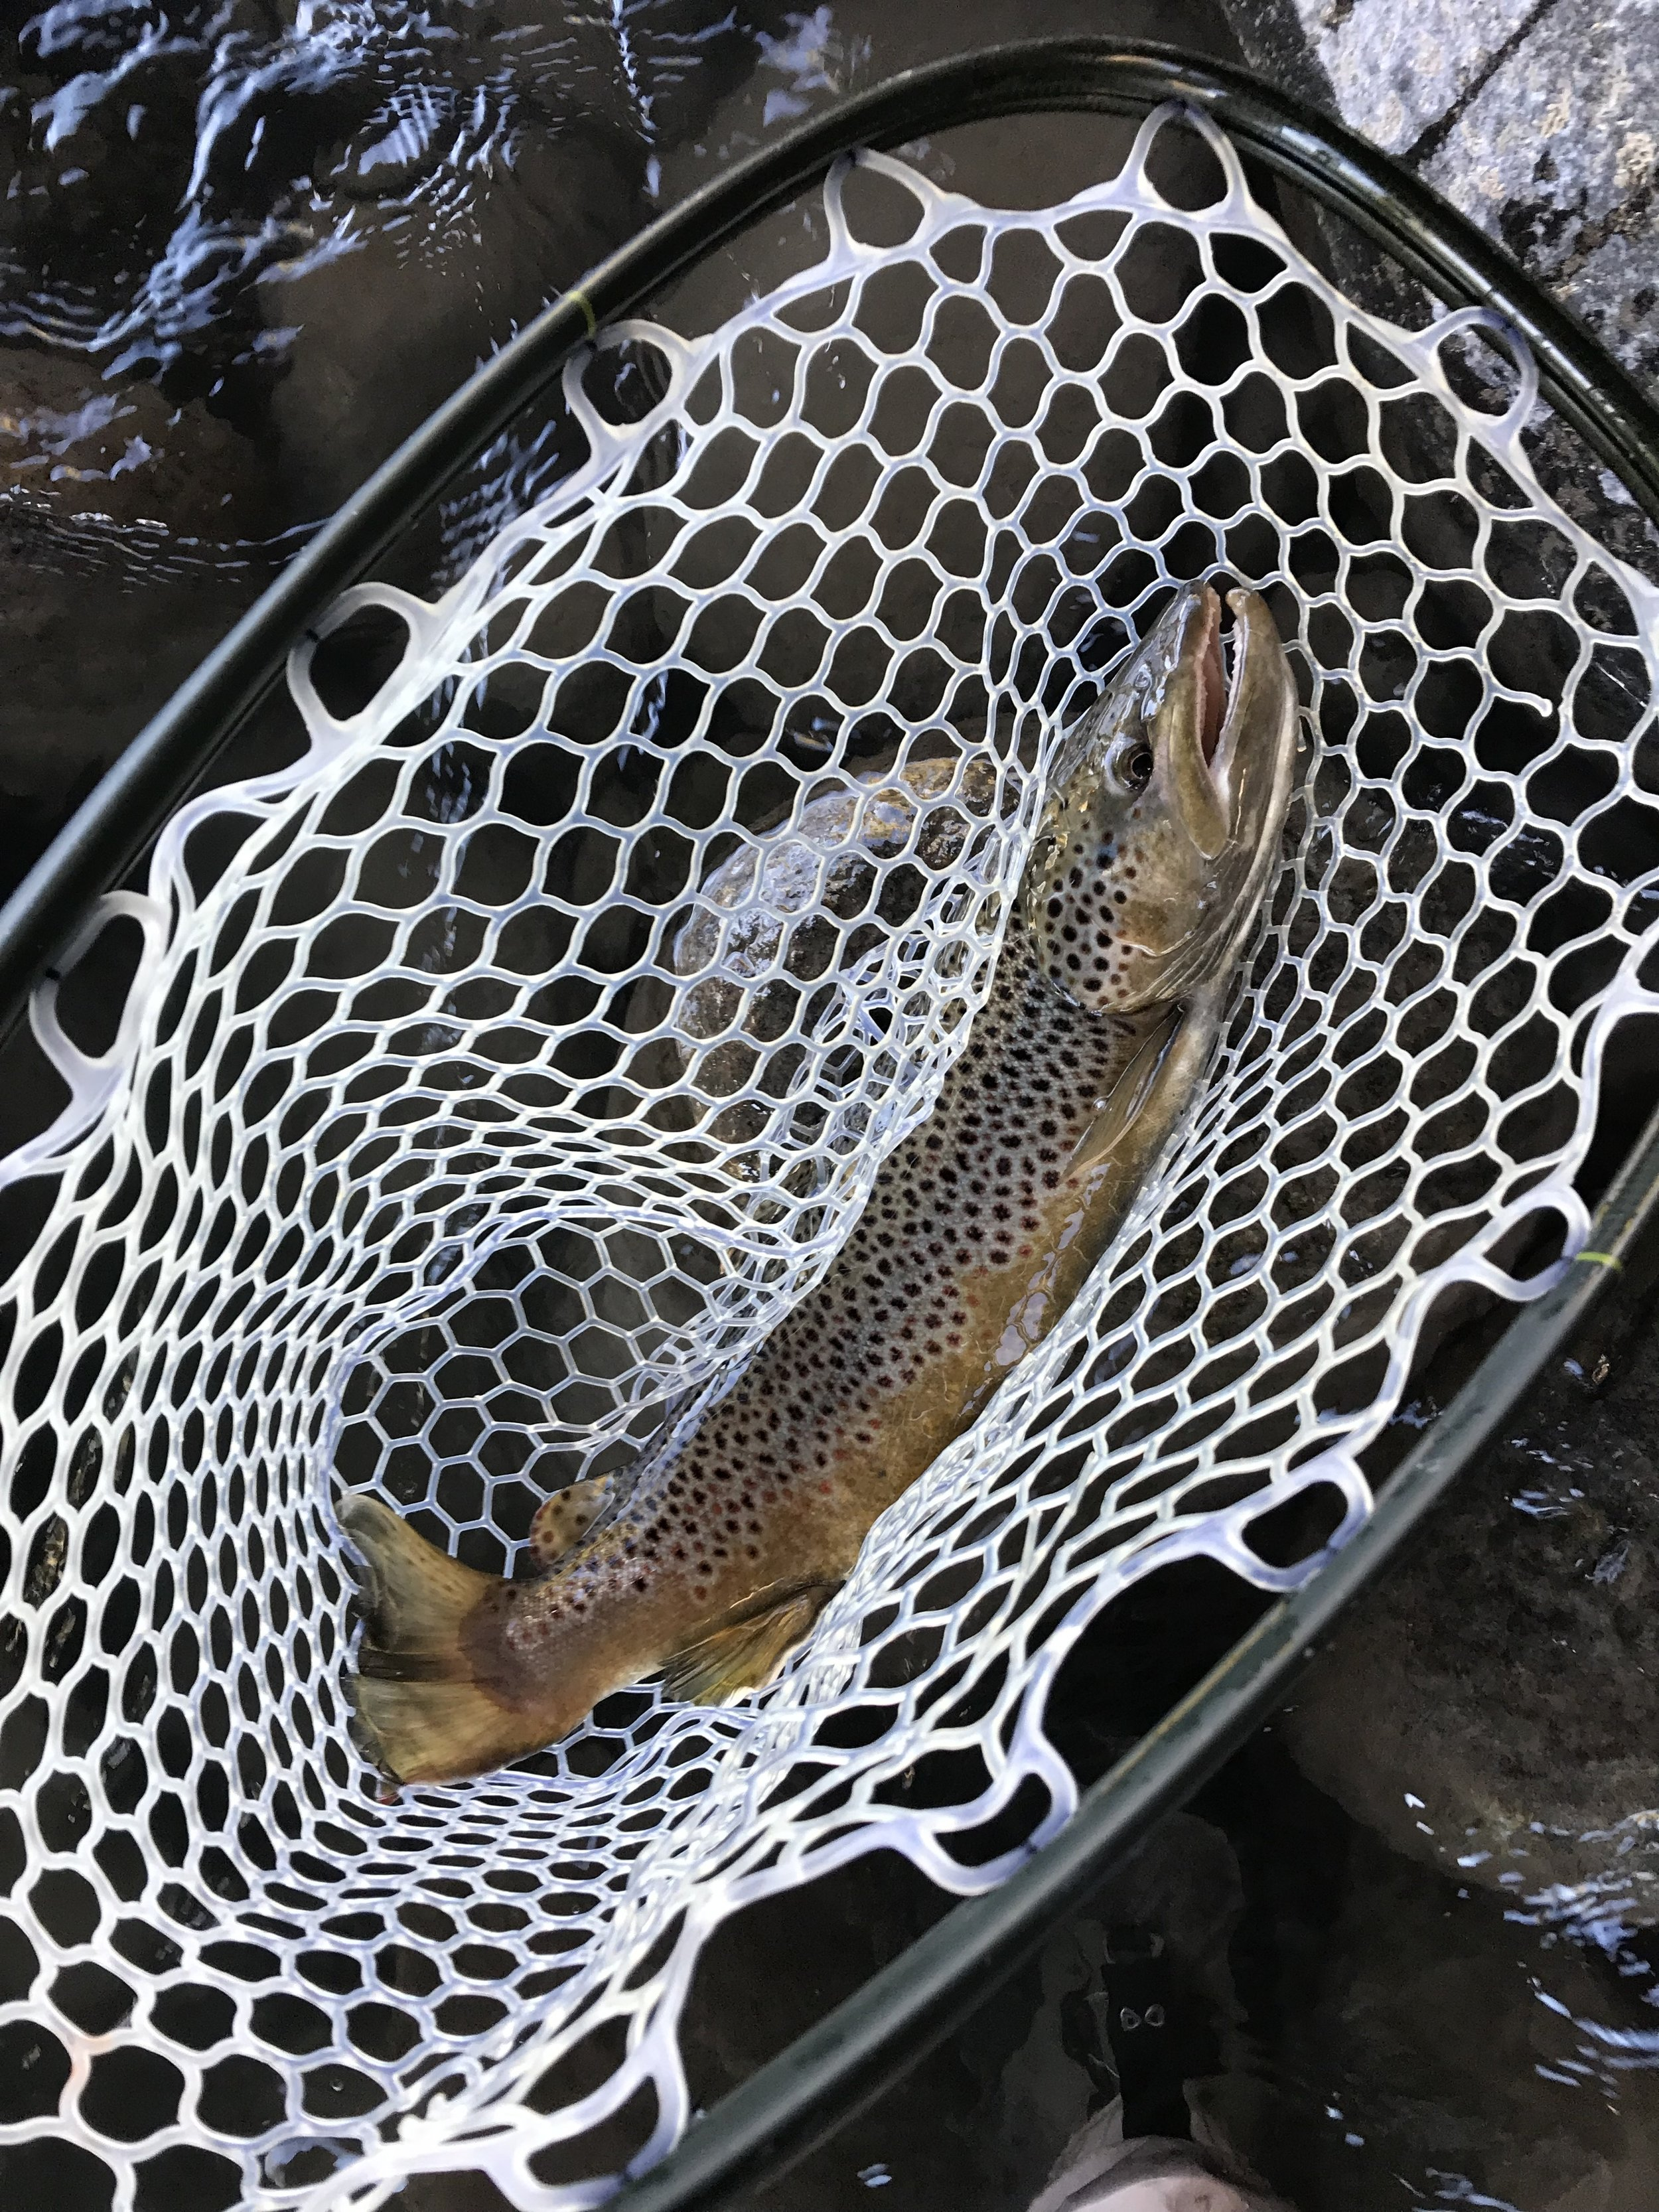 more dry fly butter